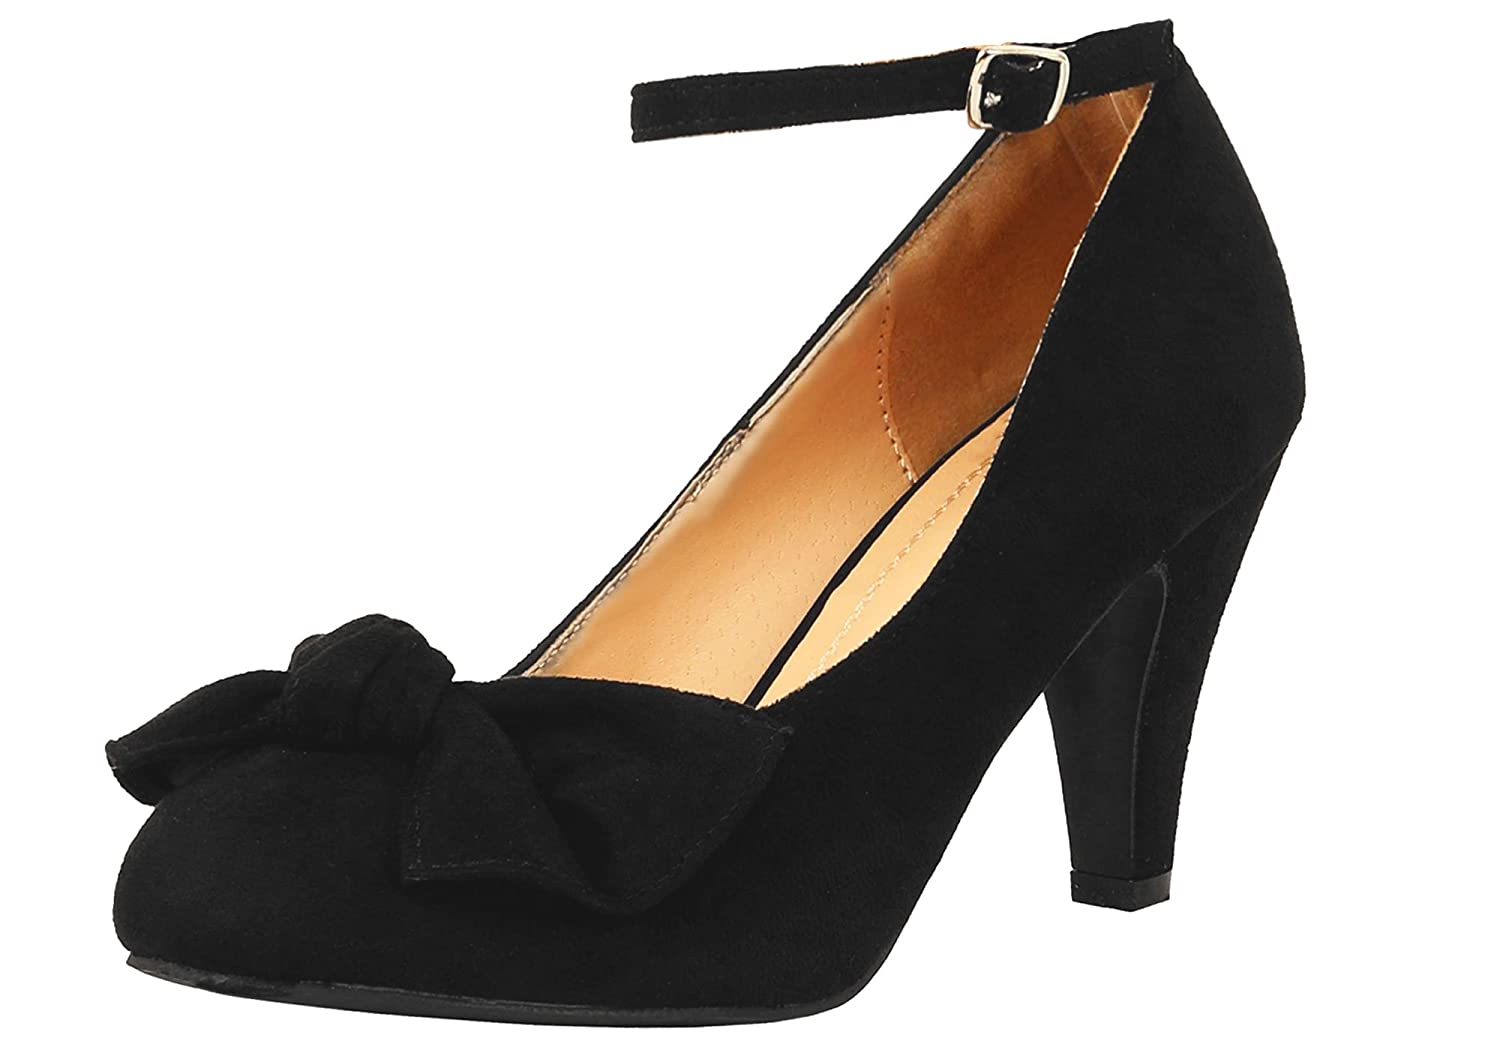 Vintage Style Shoes, Vintage Inspired Shoes Chase & Chloe Women's Retro Kimmy-67 Bow Front Faux Suede Mary-Jane Pumps $39.89 AT vintagedancer.com